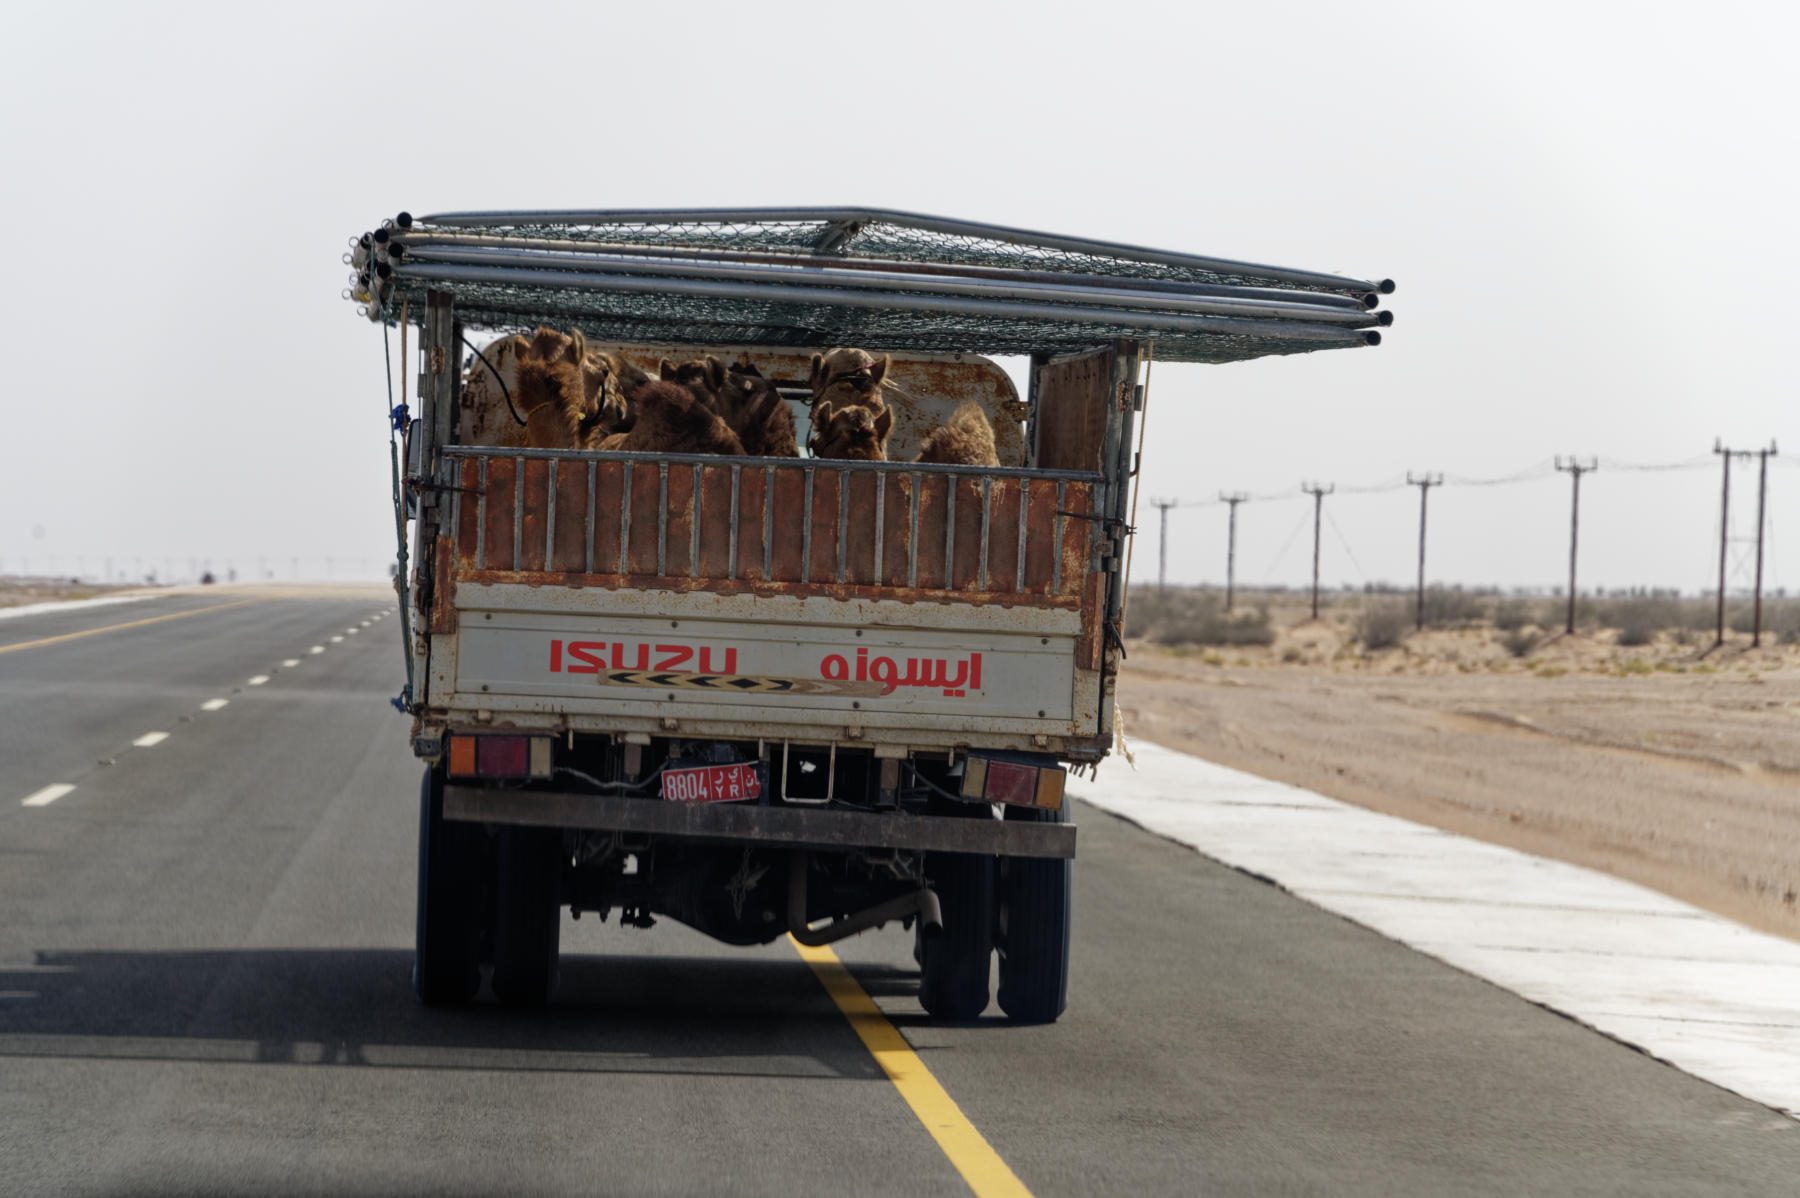 Moving camels in bulk, Oman style